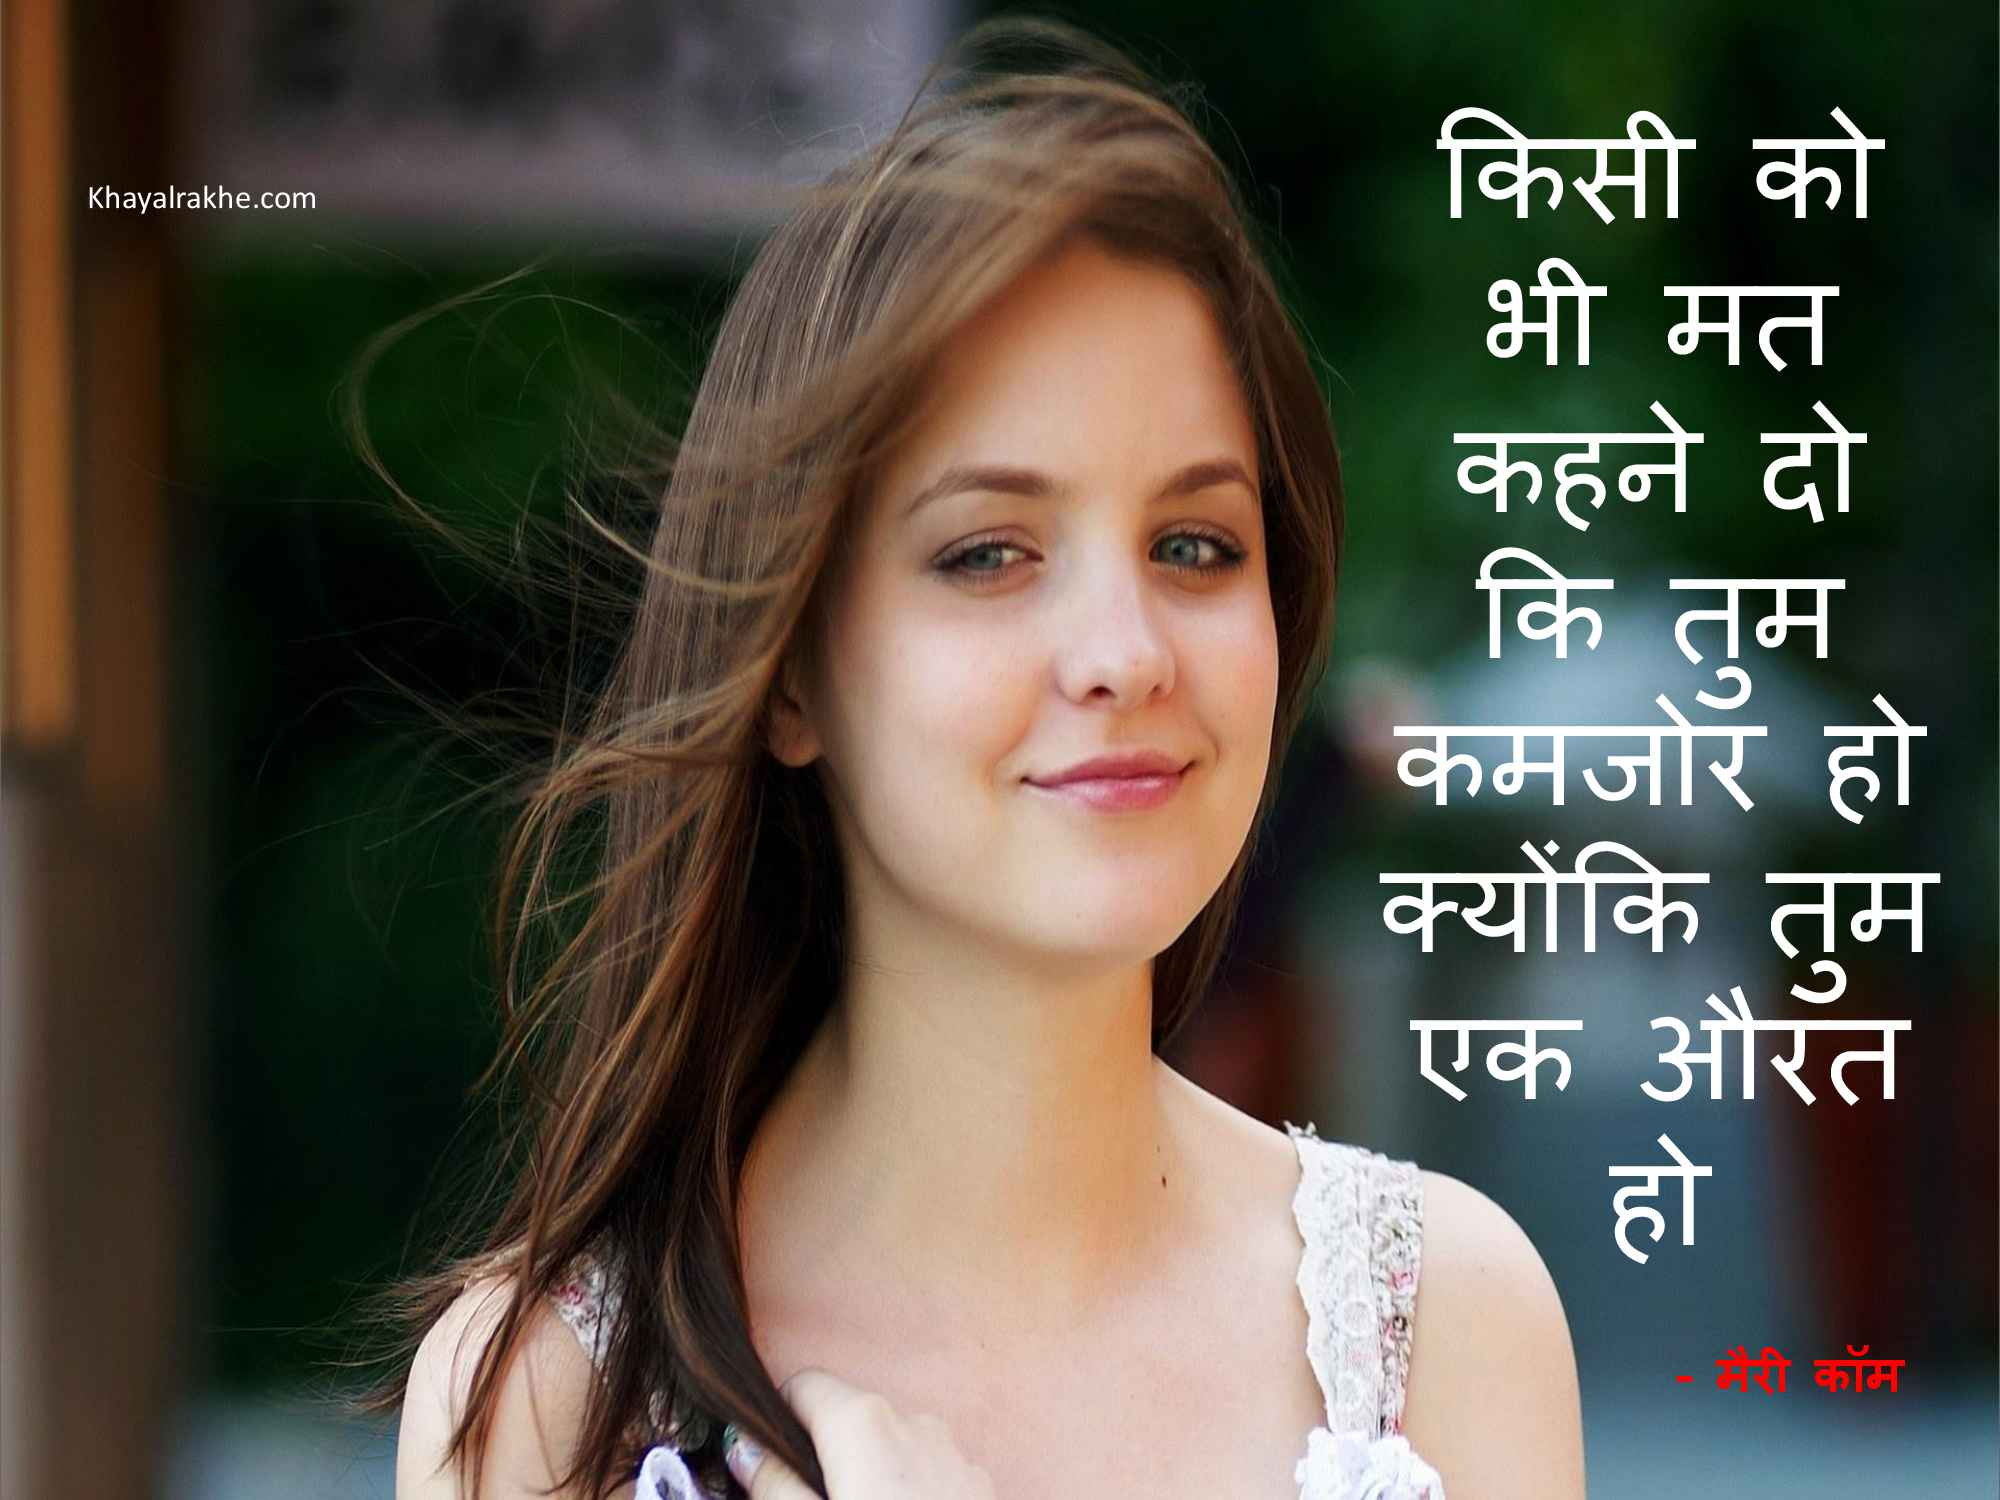 Great Quotes on Women's Day In Hindi With Image